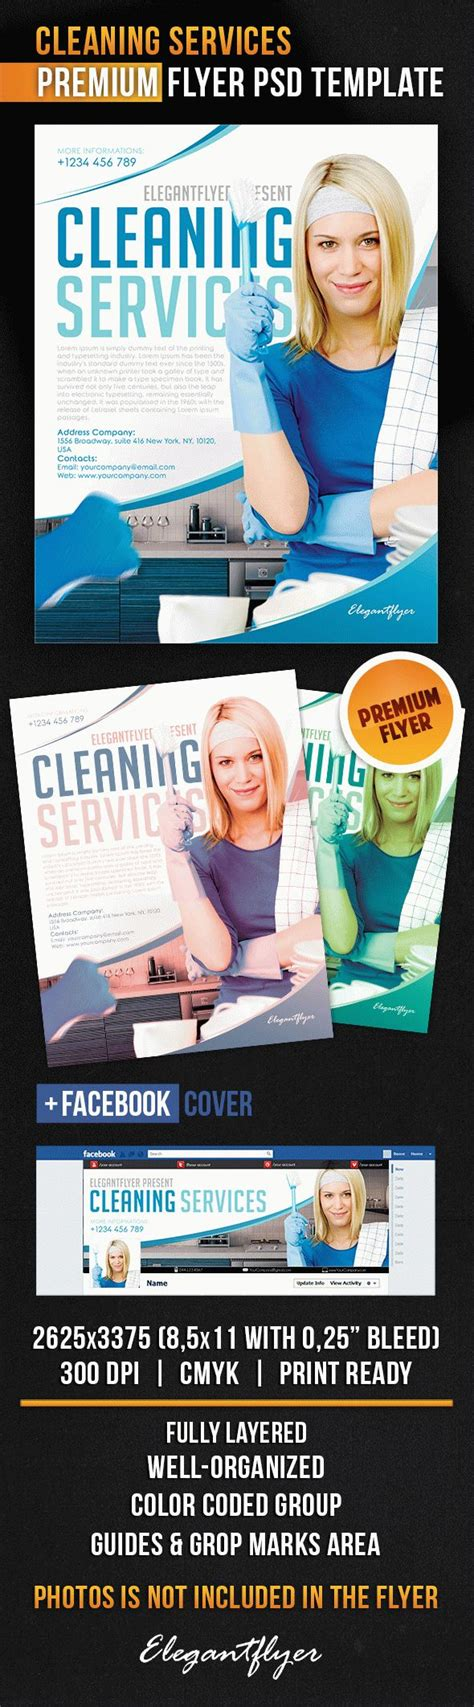 Cleaning Services Flyer Psd Template By Elegantflyer Cleaning Service Flyer Template